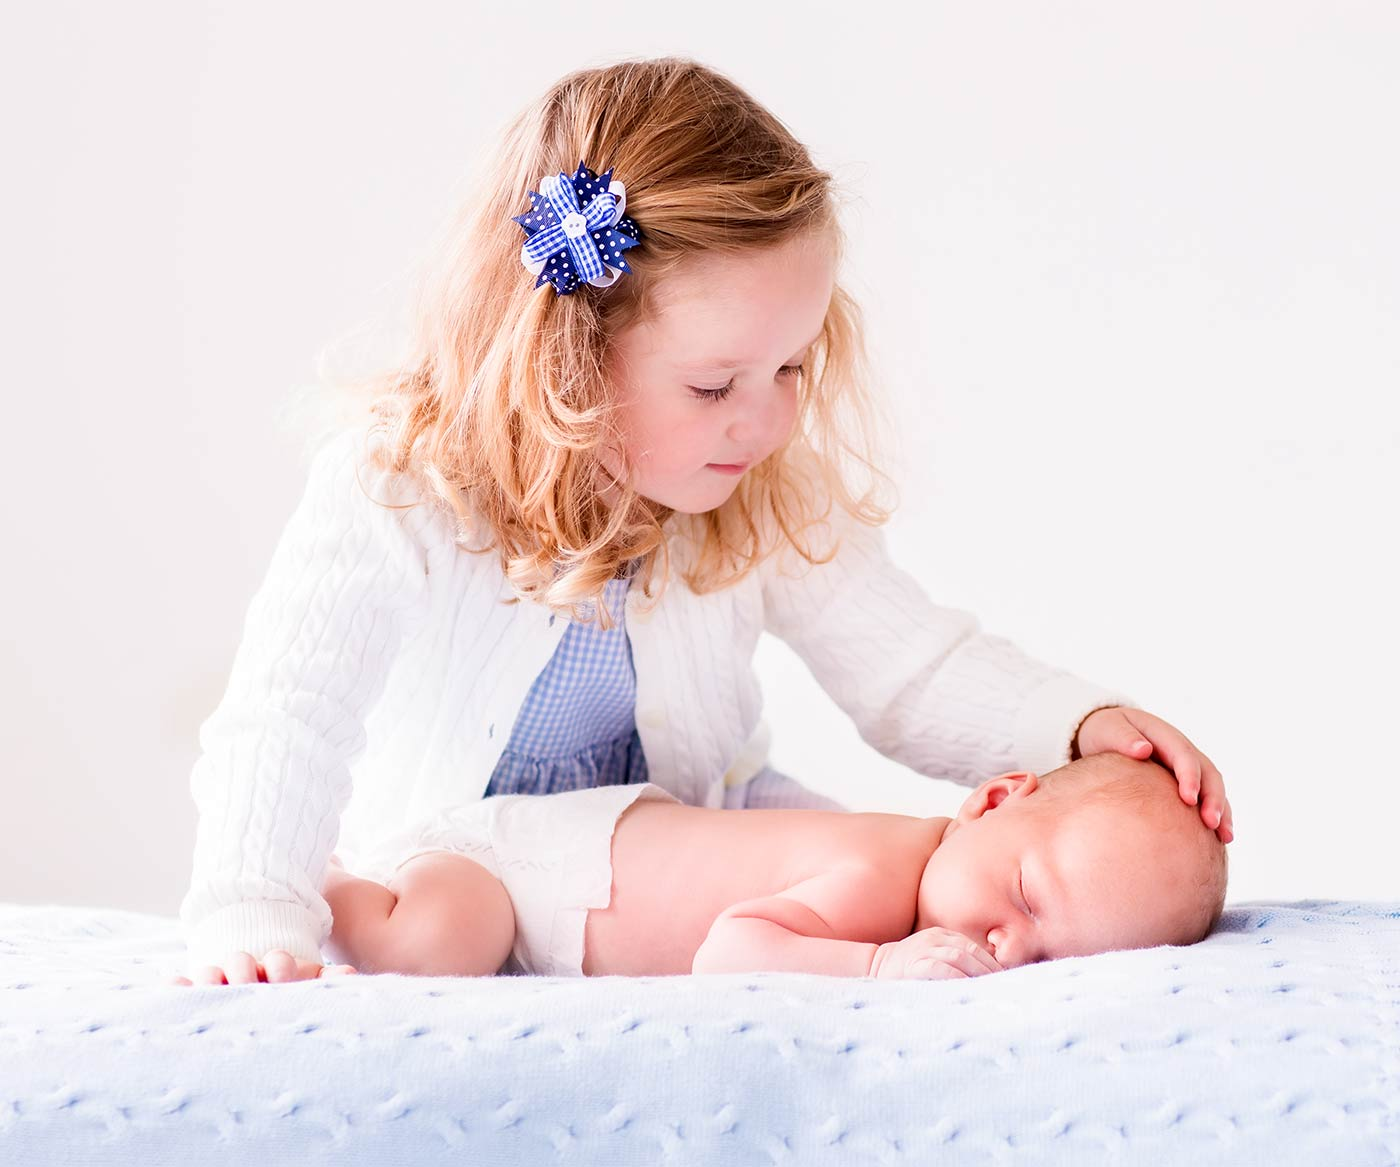 A newborn and toddler together